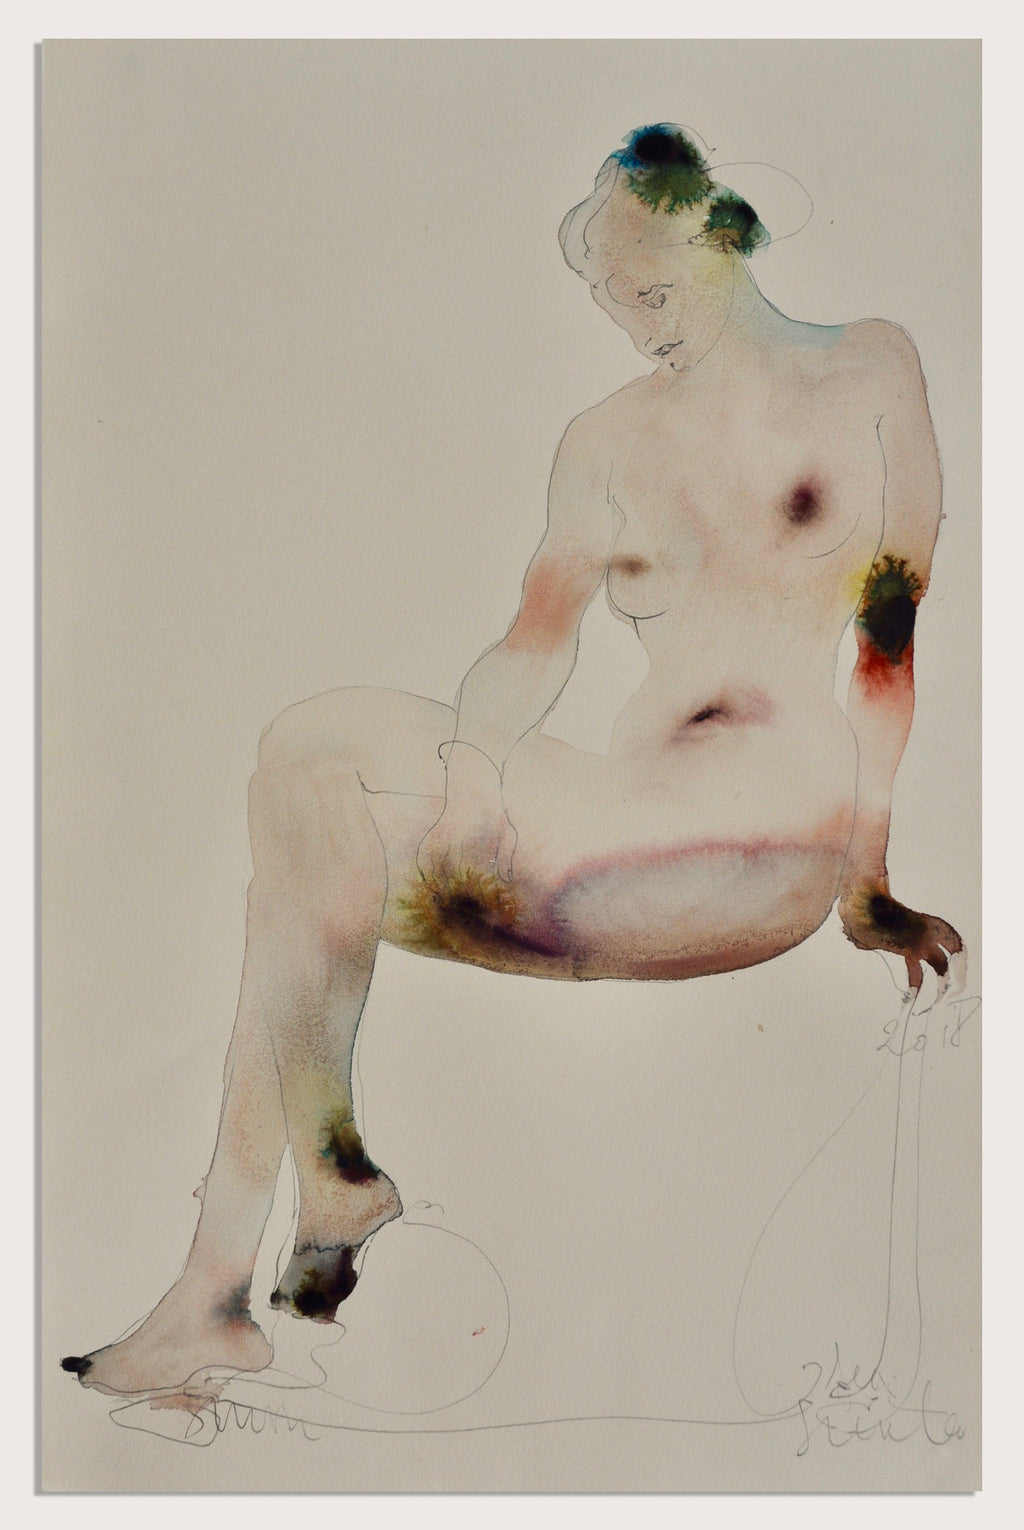 'Seated Woman', a figurative, watercolour painting by contemporary artist Jesse Leroy Smith